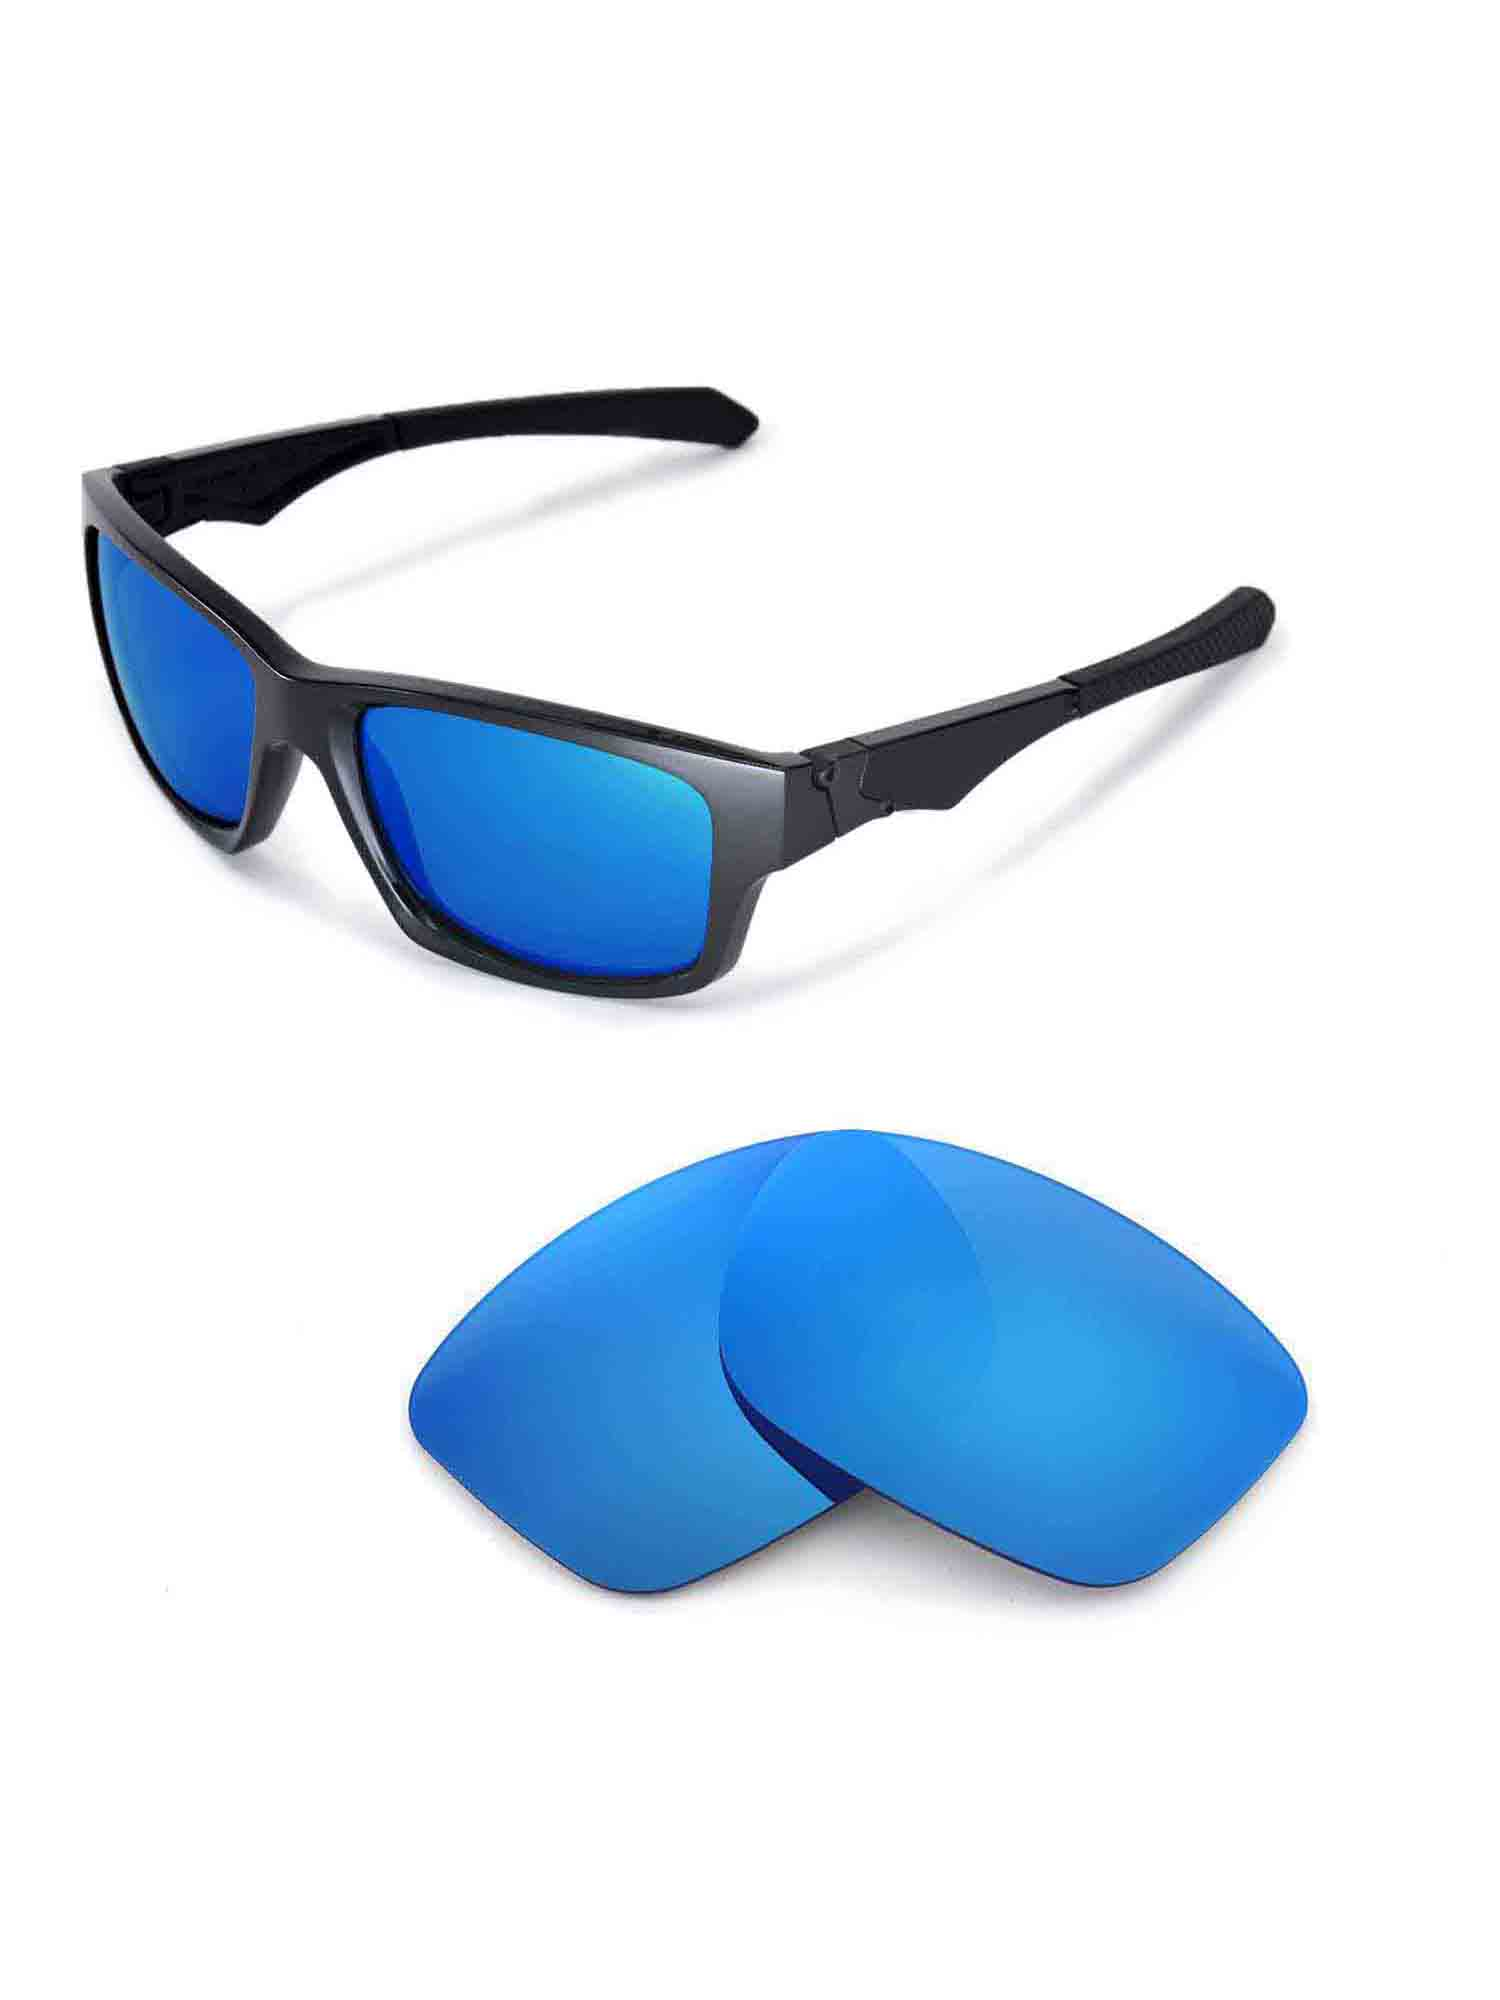 46b5b483b9 Details about WL Polarized Ice Blue Replacement Lenses For Oakley Jupiter  Squared Sunglasses